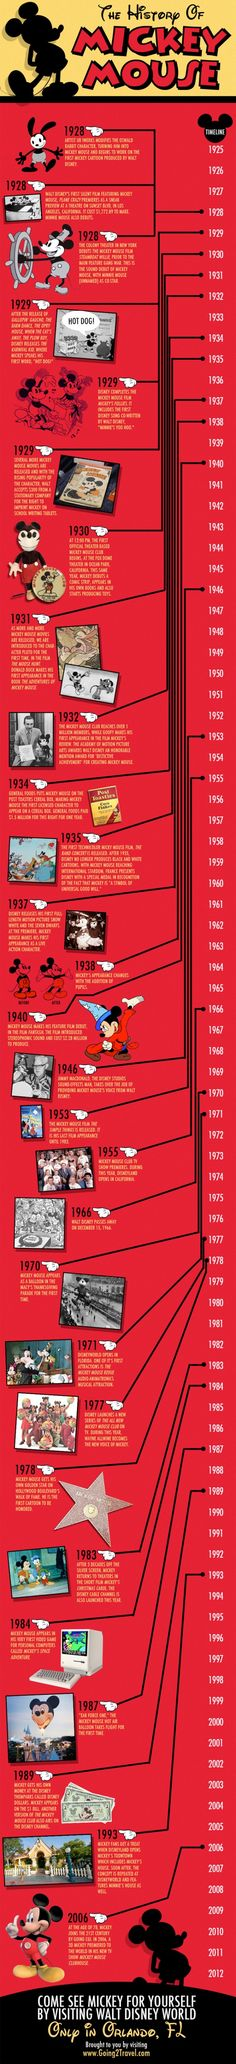 Funny pictures about The History of Mickey Mouse. Oh, and cool pics about The History of Mickey Mouse. Also, The History of Mickey Mouse. Disney Mickey Mouse, Disney Pixar, Walt Disney, Minnie Mouse, Disney Facts, Mickey Mouse And Friends, Disney Quotes, Disney Animation, Disney Love